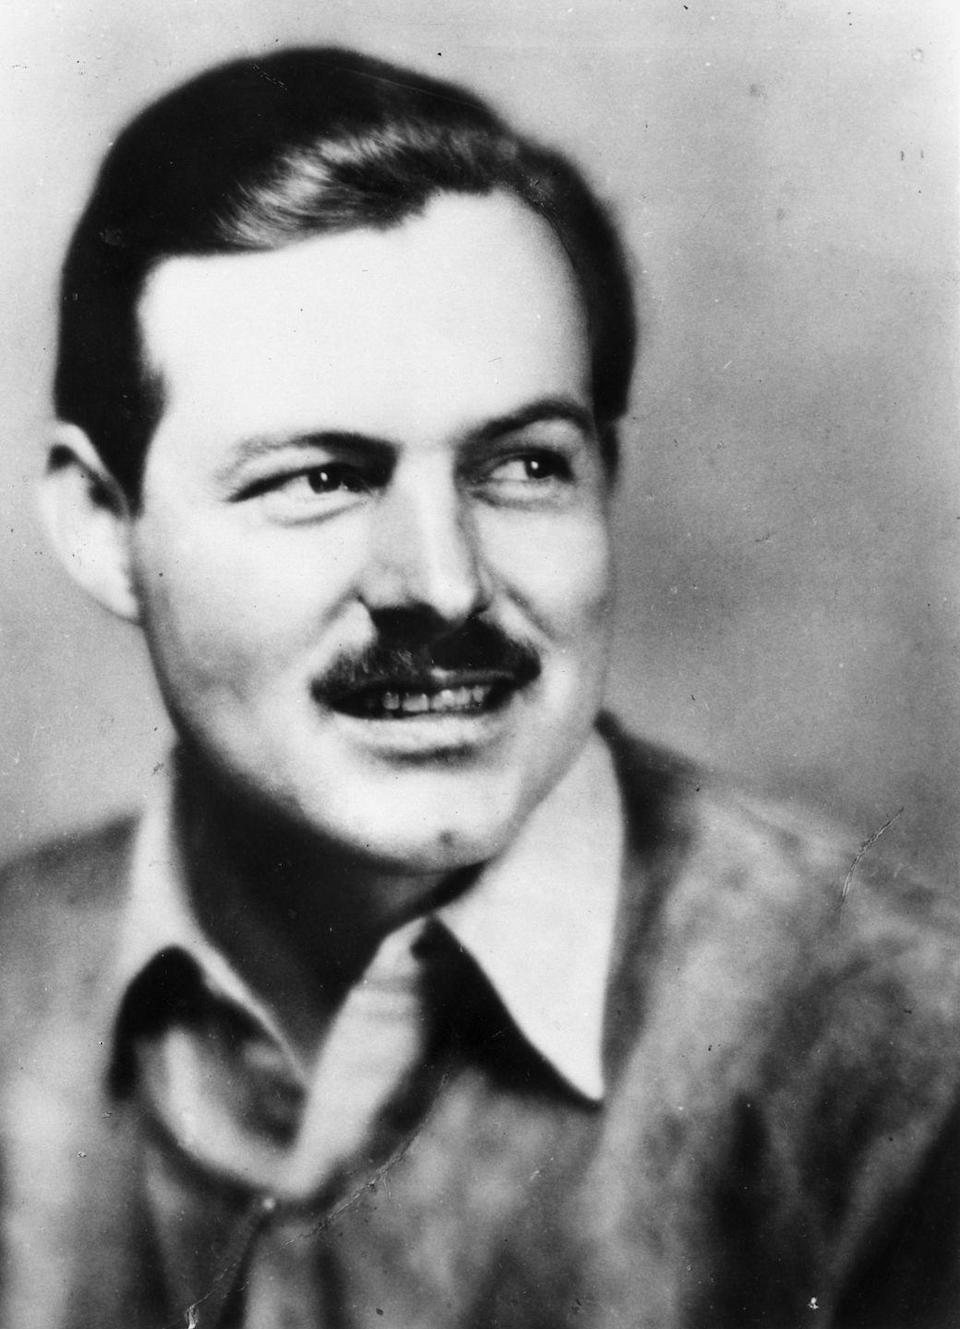 """<p>After his return to Chicago, Hemingway <a href=""""https://www.biography.com/news/ernest-hemingway-wives"""" rel=""""nofollow noopener"""" target=""""_blank"""" data-ylk=""""slk:met musician Hadley Richardson"""" class=""""link rapid-noclick-resp"""">met musician Hadley Richardson</a> in 1920. The couple got married in 1921 and moved to Paris, where he fell in with the American literary crowd, such as James Joyce, F. Scott Fitzgerald and Gertrude Stein. After two years, they moved to Toronto, where Hemingway <a href=""""https://www.thestar.com/news/insight/2016/09/19/how-hemingway-became-hemingway.html"""" rel=""""nofollow noopener"""" target=""""_blank"""" data-ylk=""""slk:worked for the Toronto Star"""" class=""""link rapid-noclick-resp"""">worked for the<em> Toronto Star</em></a><em>.</em></p>"""